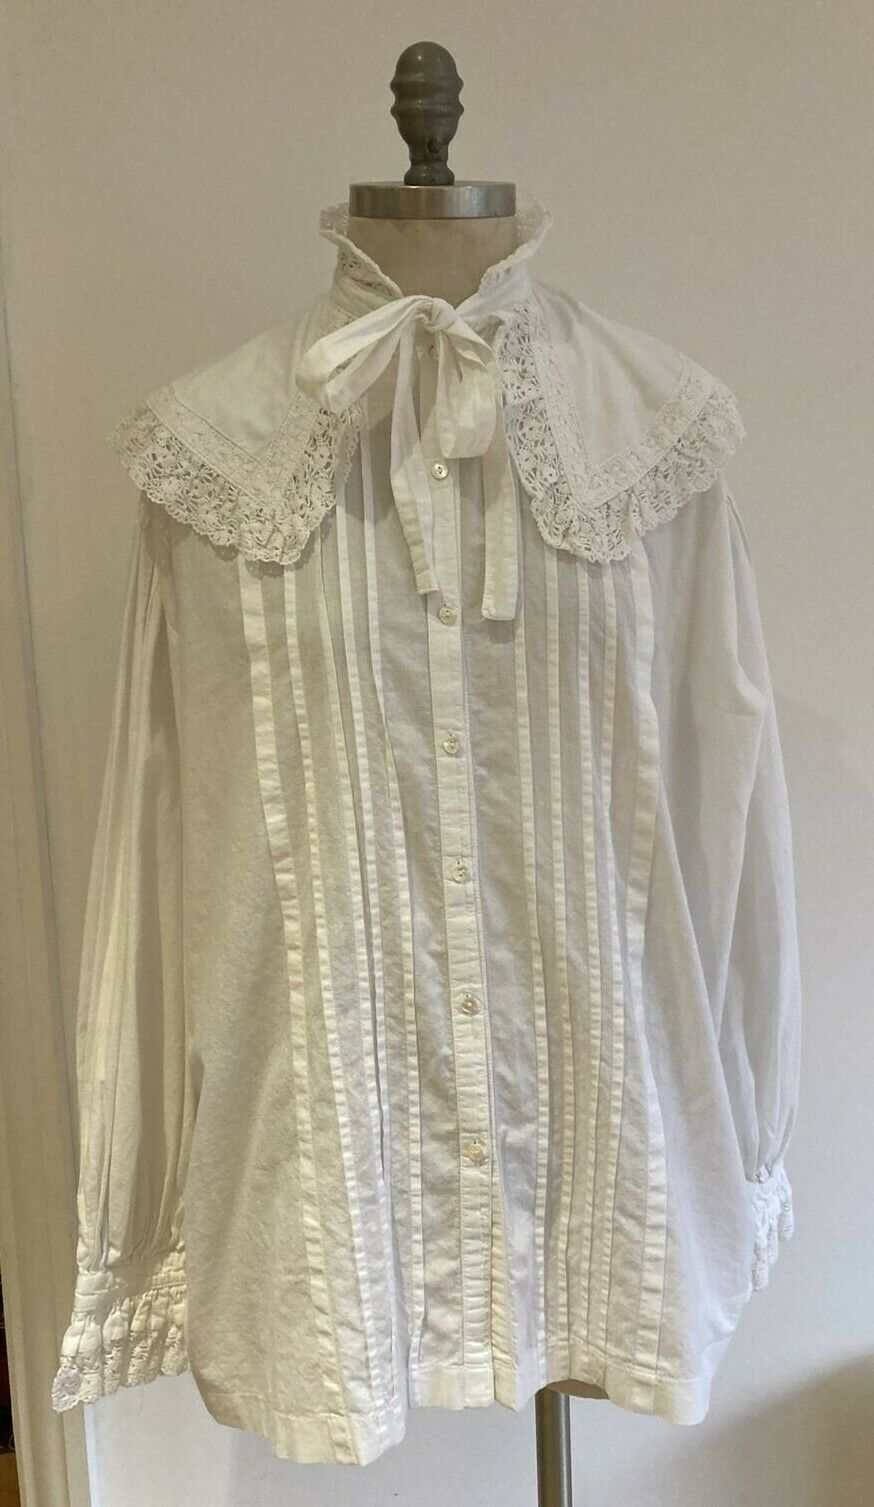 Laura Ashley Victorian/Edwardian Style Blouse, Size Large, Made in Wales